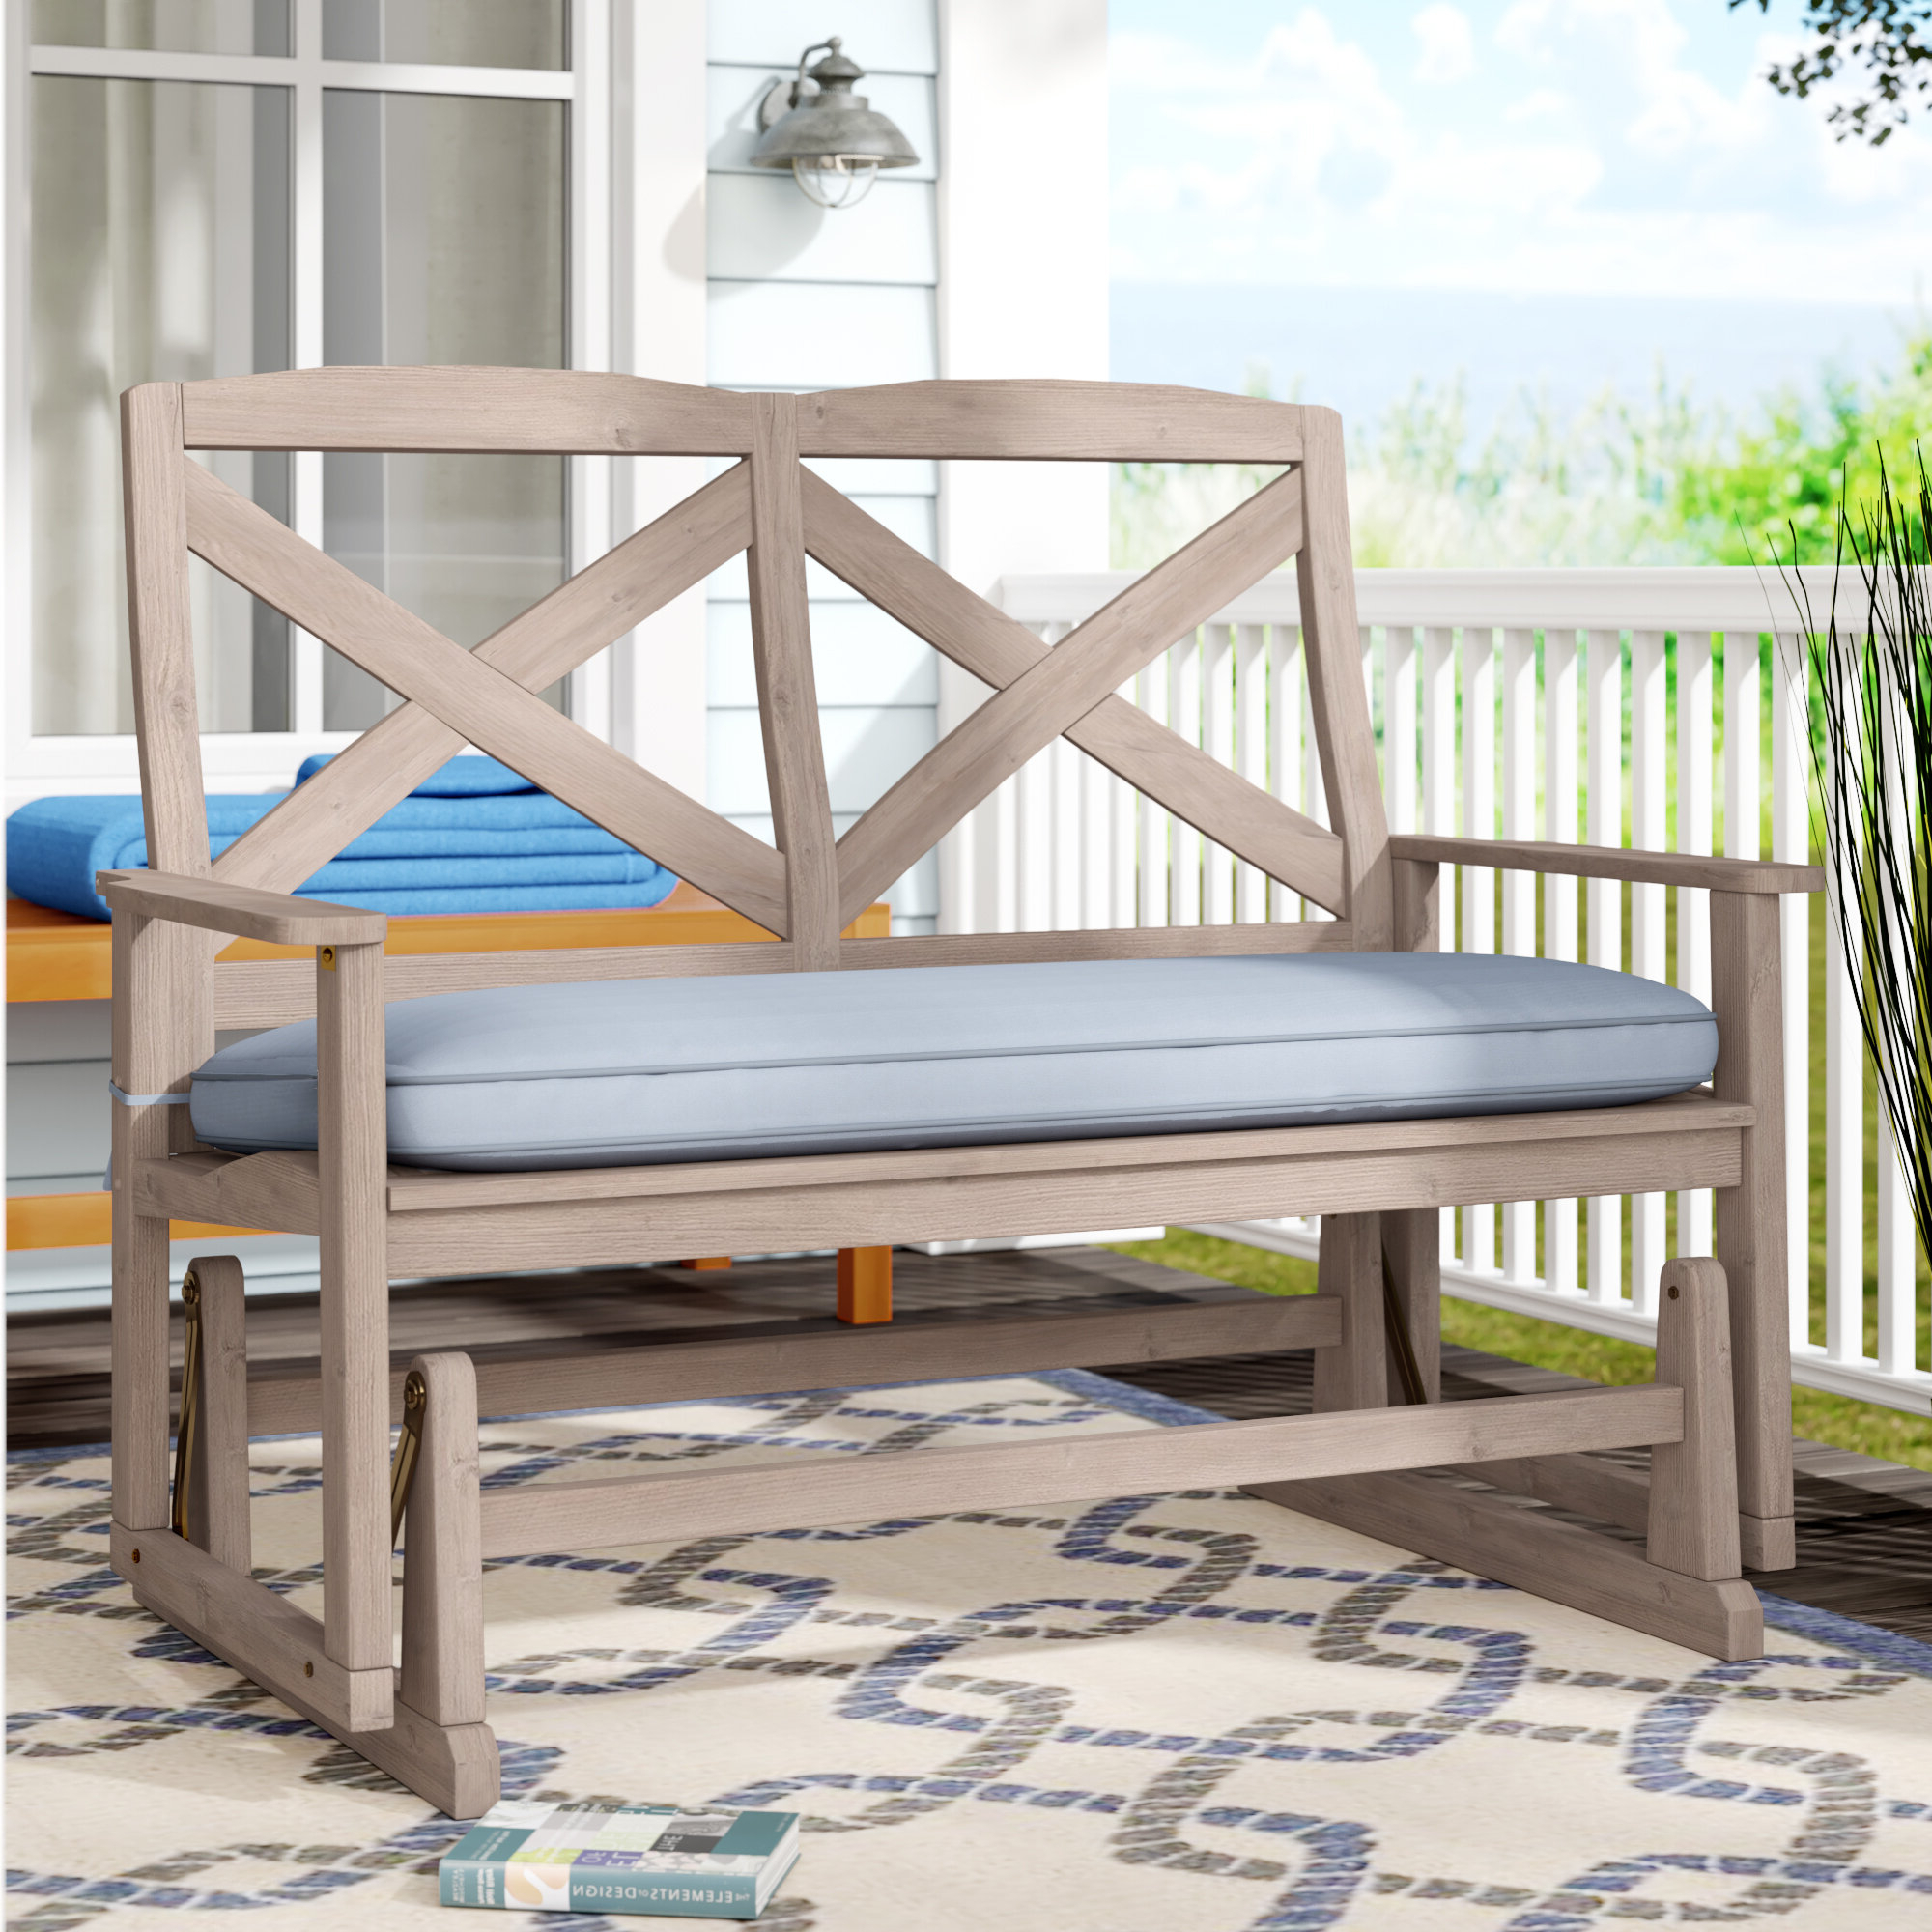 Beachcrest Home Englewood Glider Bench With Cushion Regarding Famous 2 Person Natural Cedar Wood Outdoor Gliders (View 27 of 30)